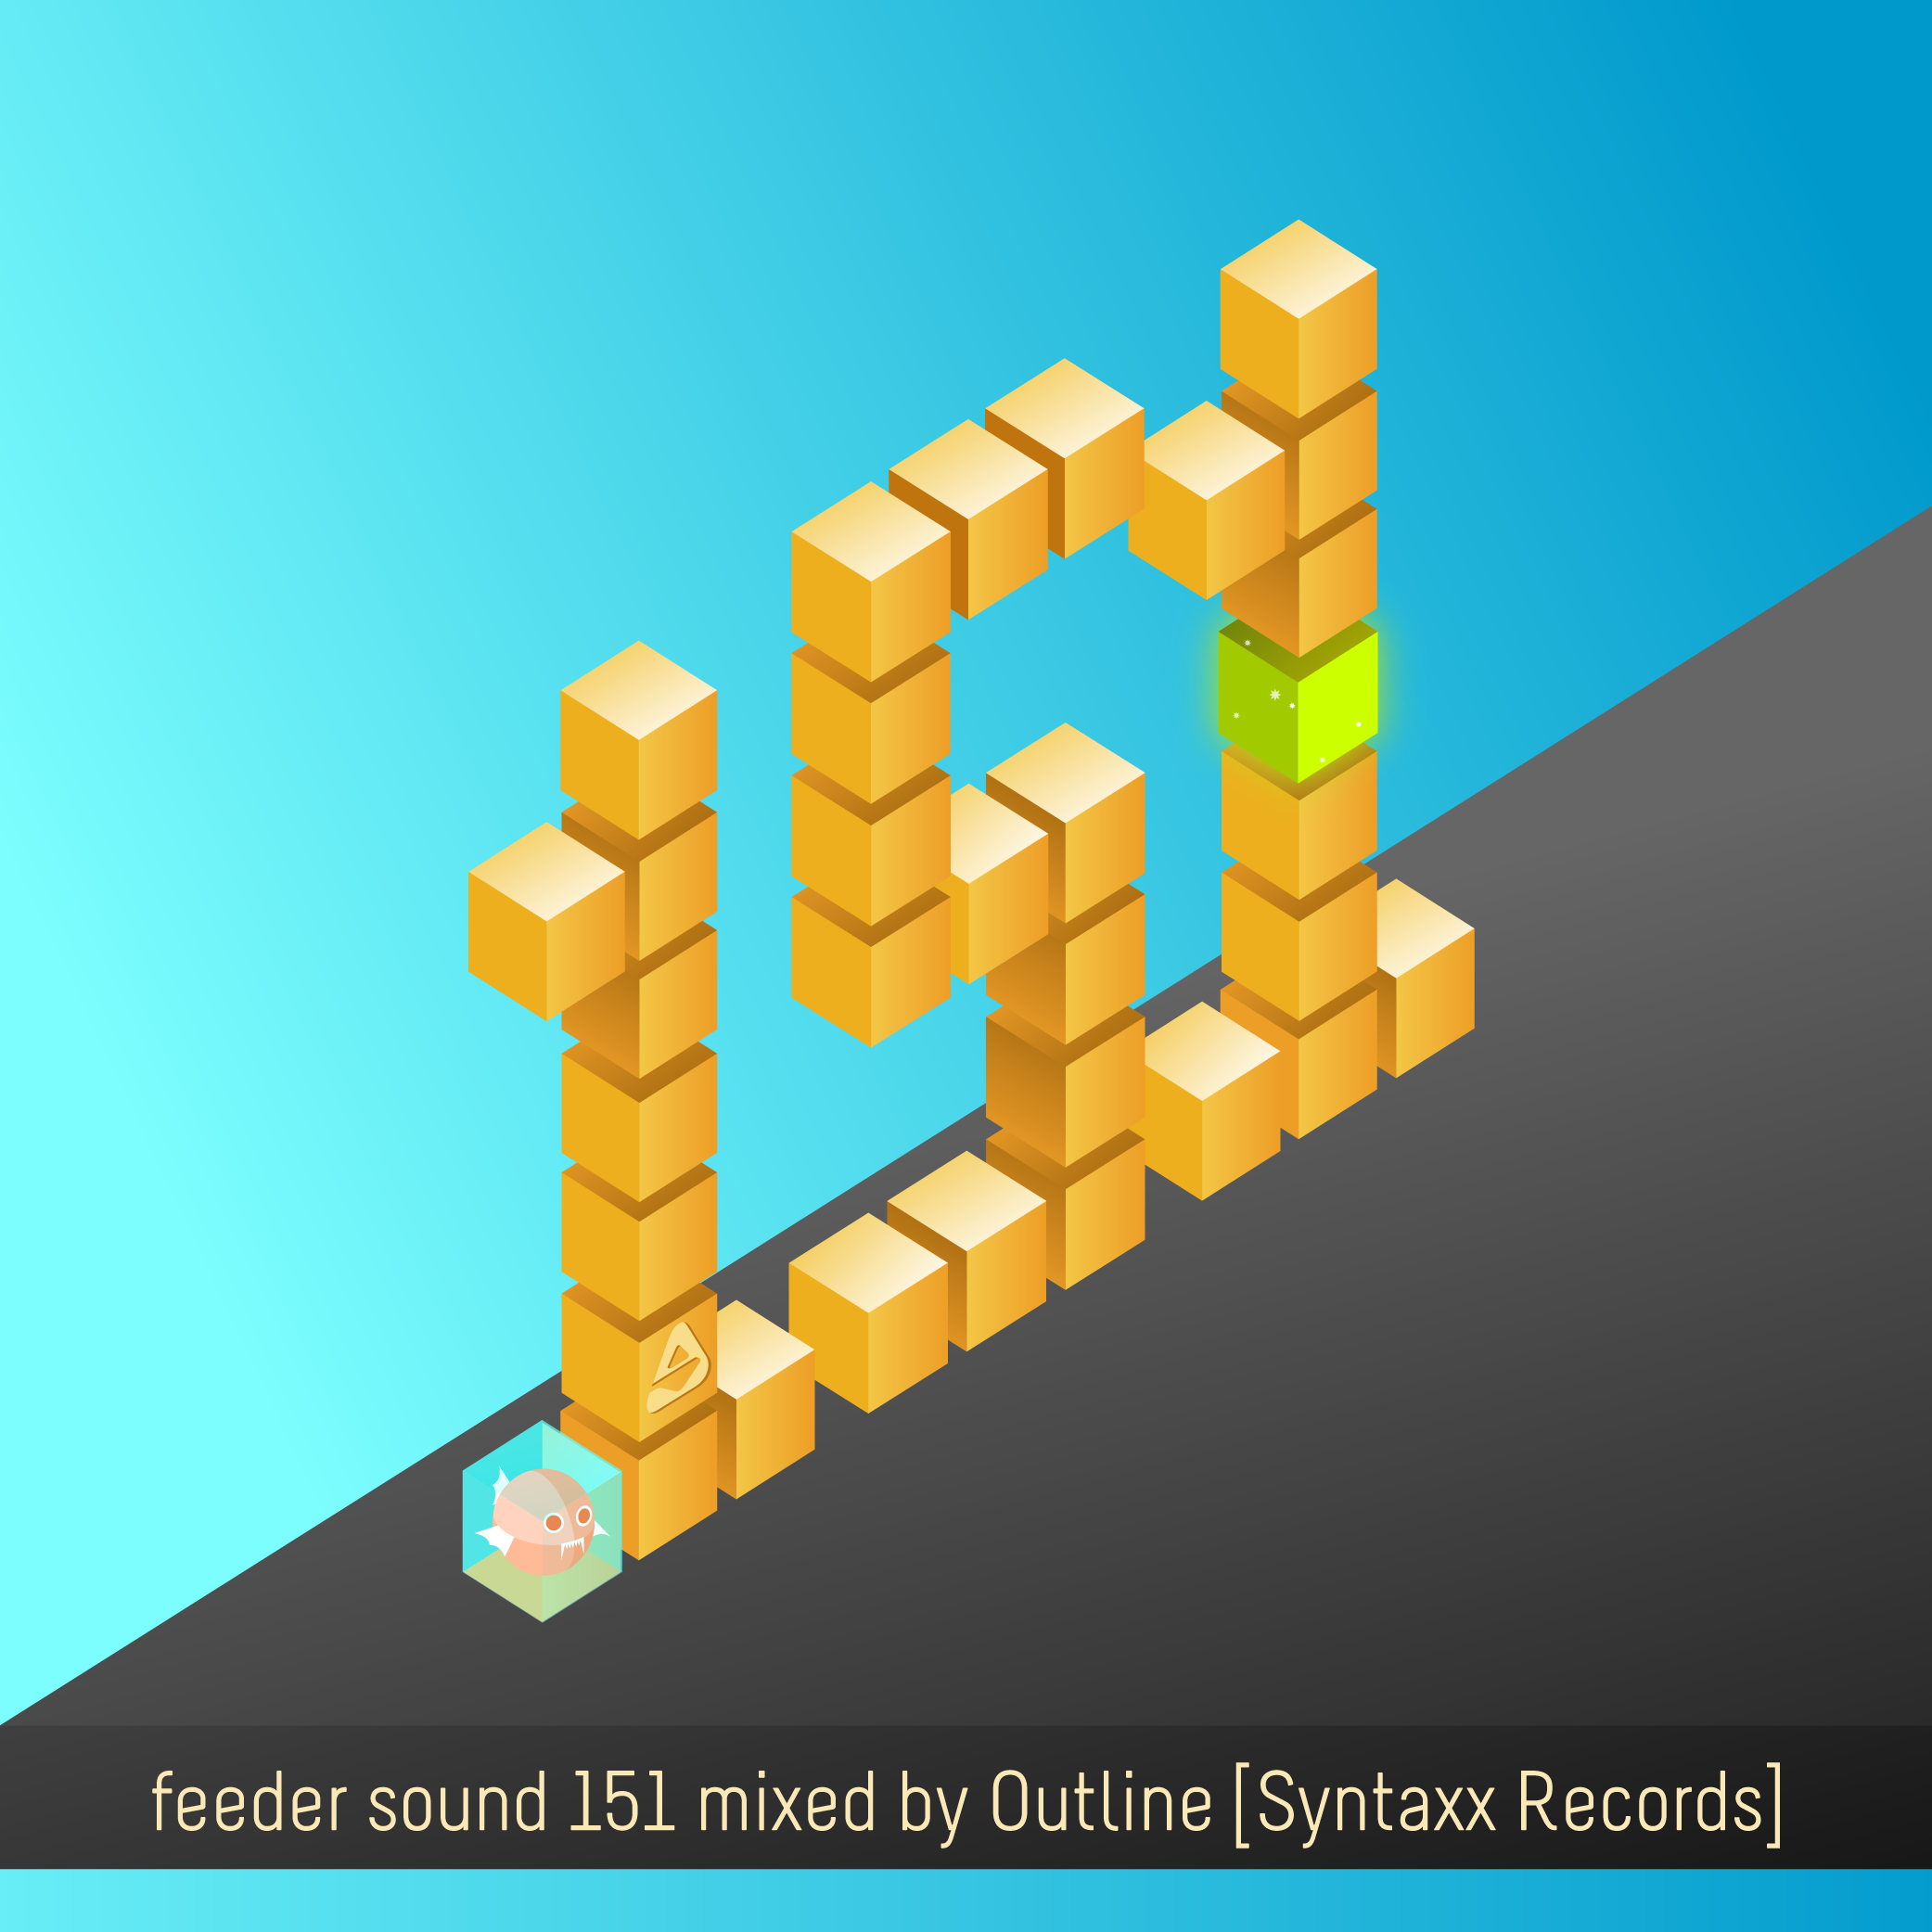 feeder sound 151 mixed by Outline